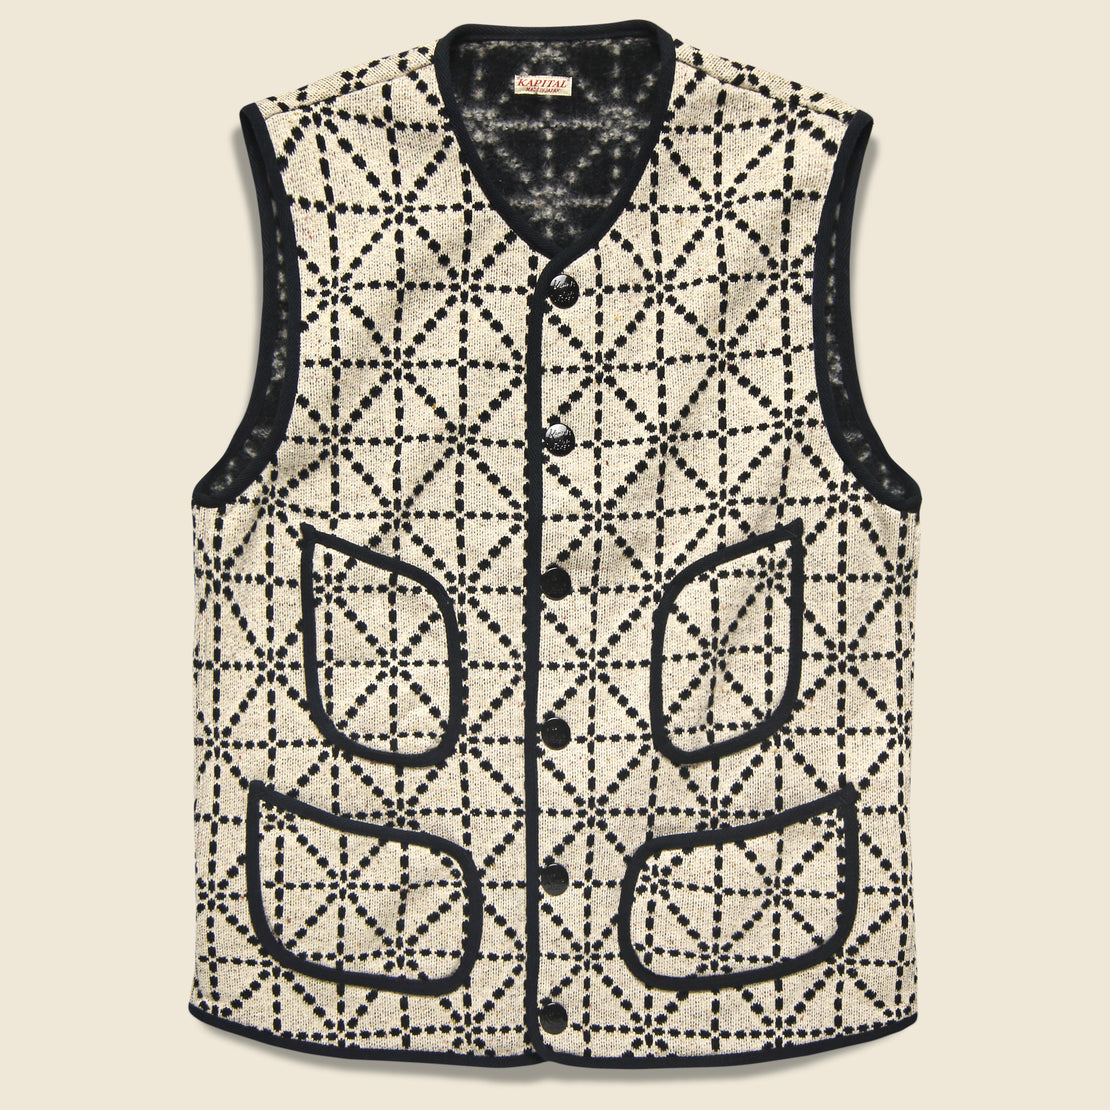 Kapital Do-Gi Sashiko Fleecy Knit Beach Vest - Black/White